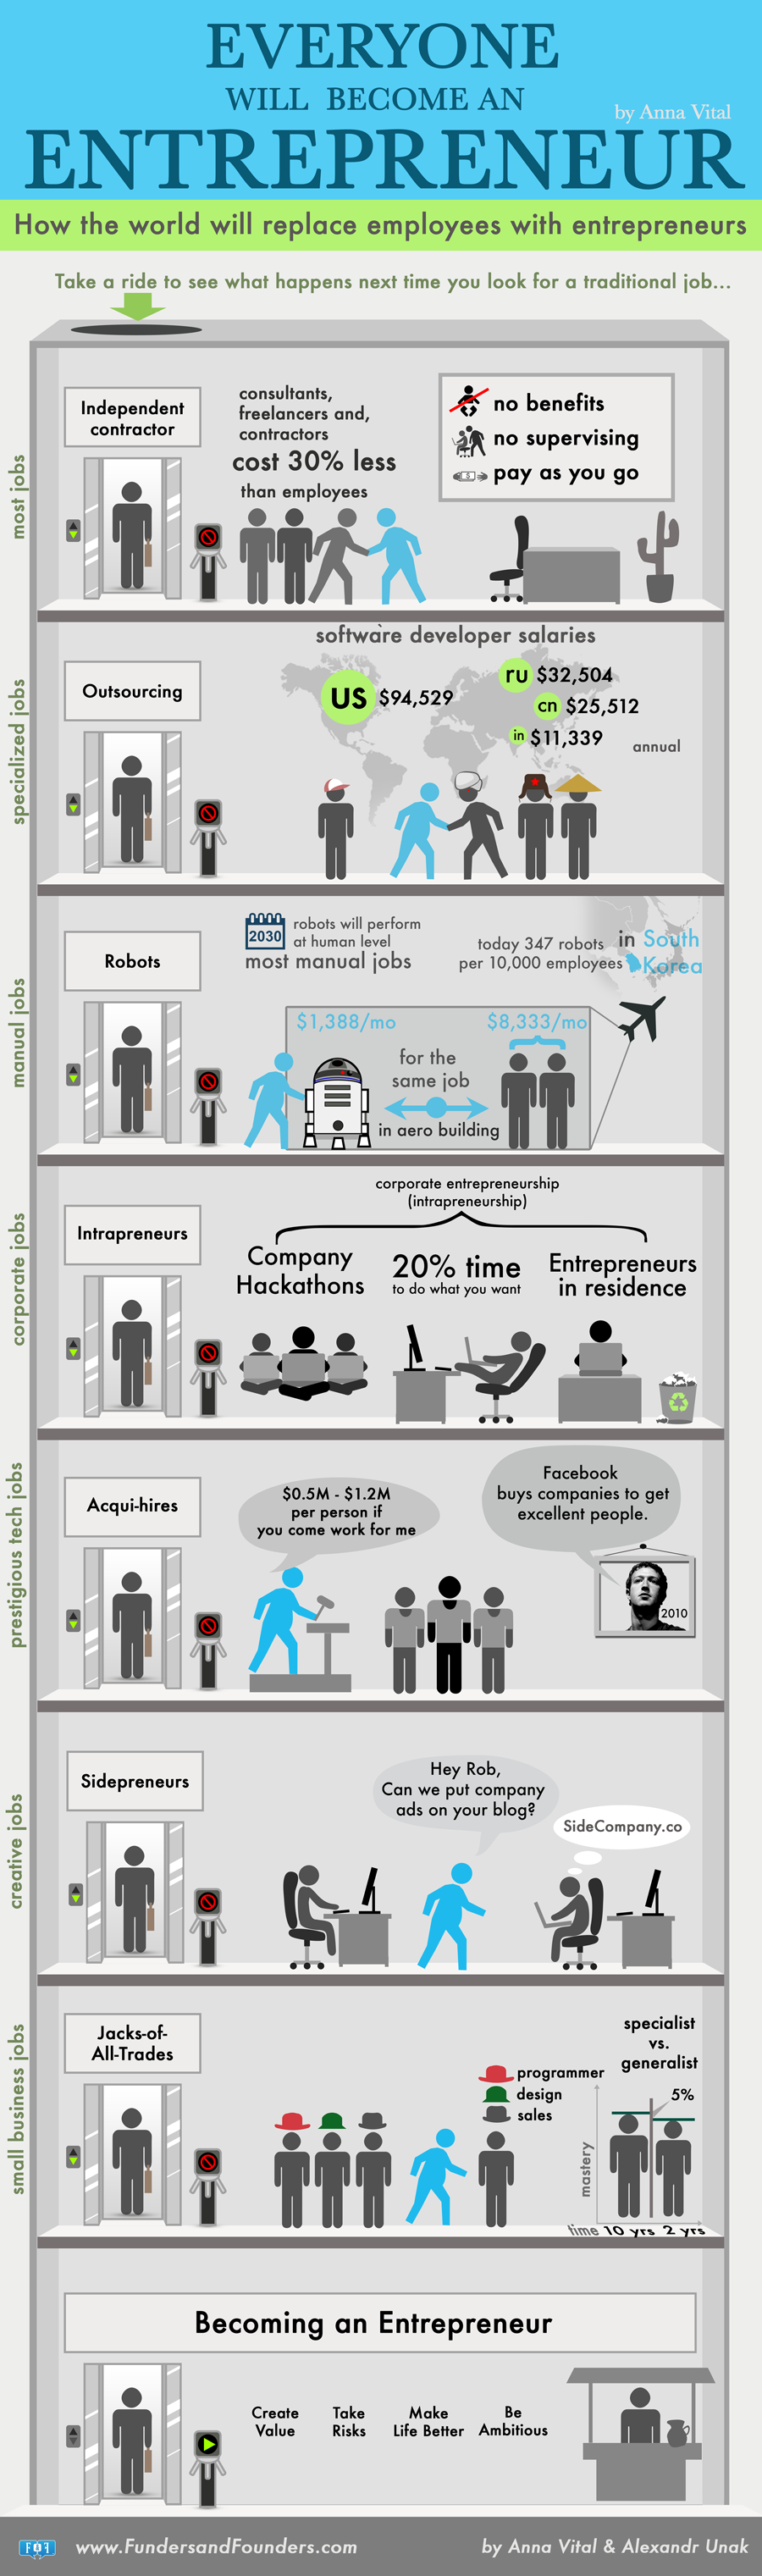 How the world will replace employees with entrepreneurs Infographic @billionsuccess